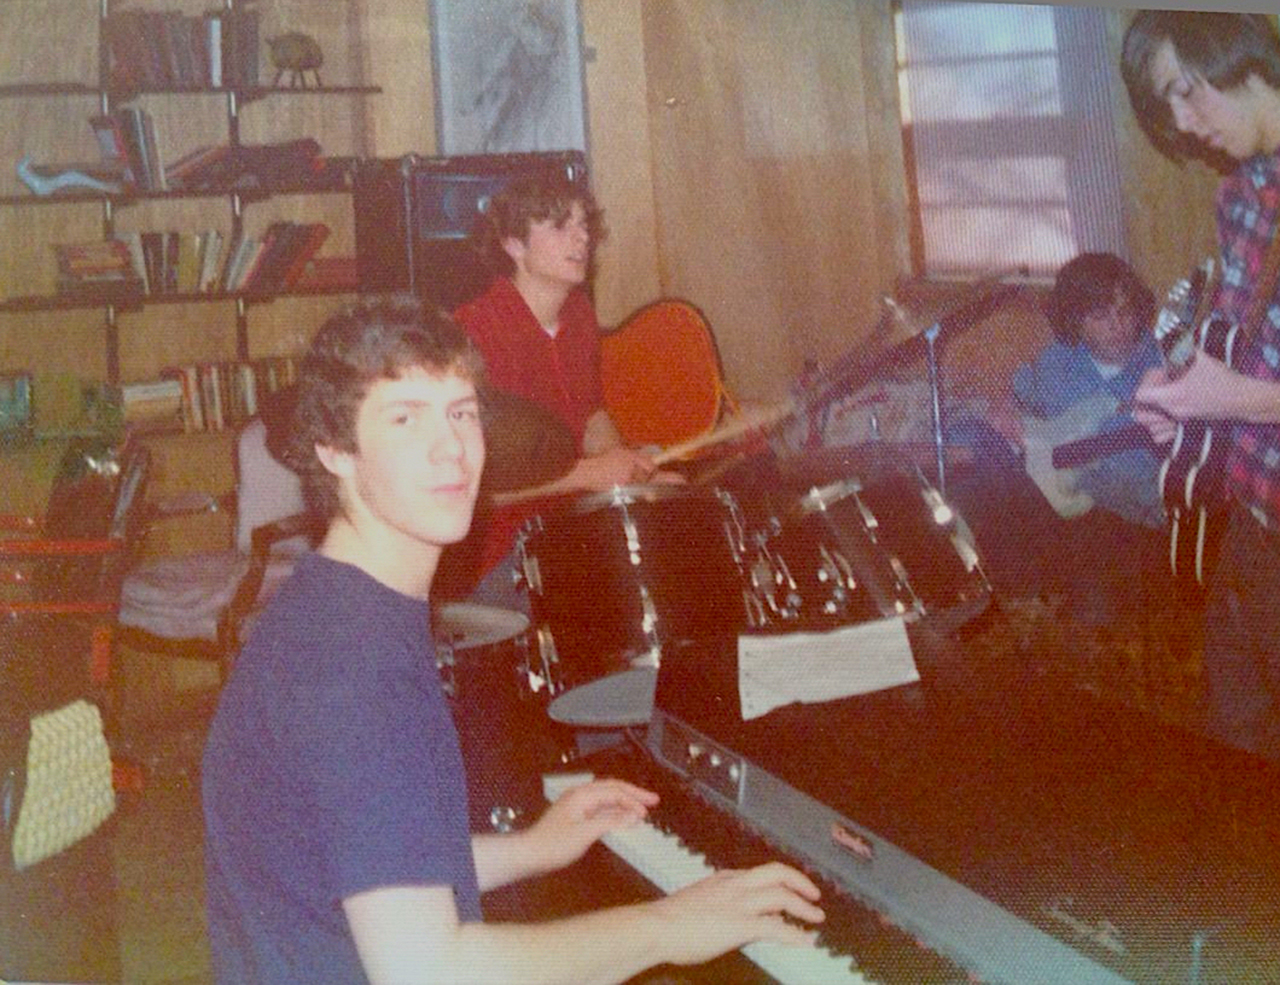 Edge, Larchmont rehearsal, 1973. Or maybe it was '74.